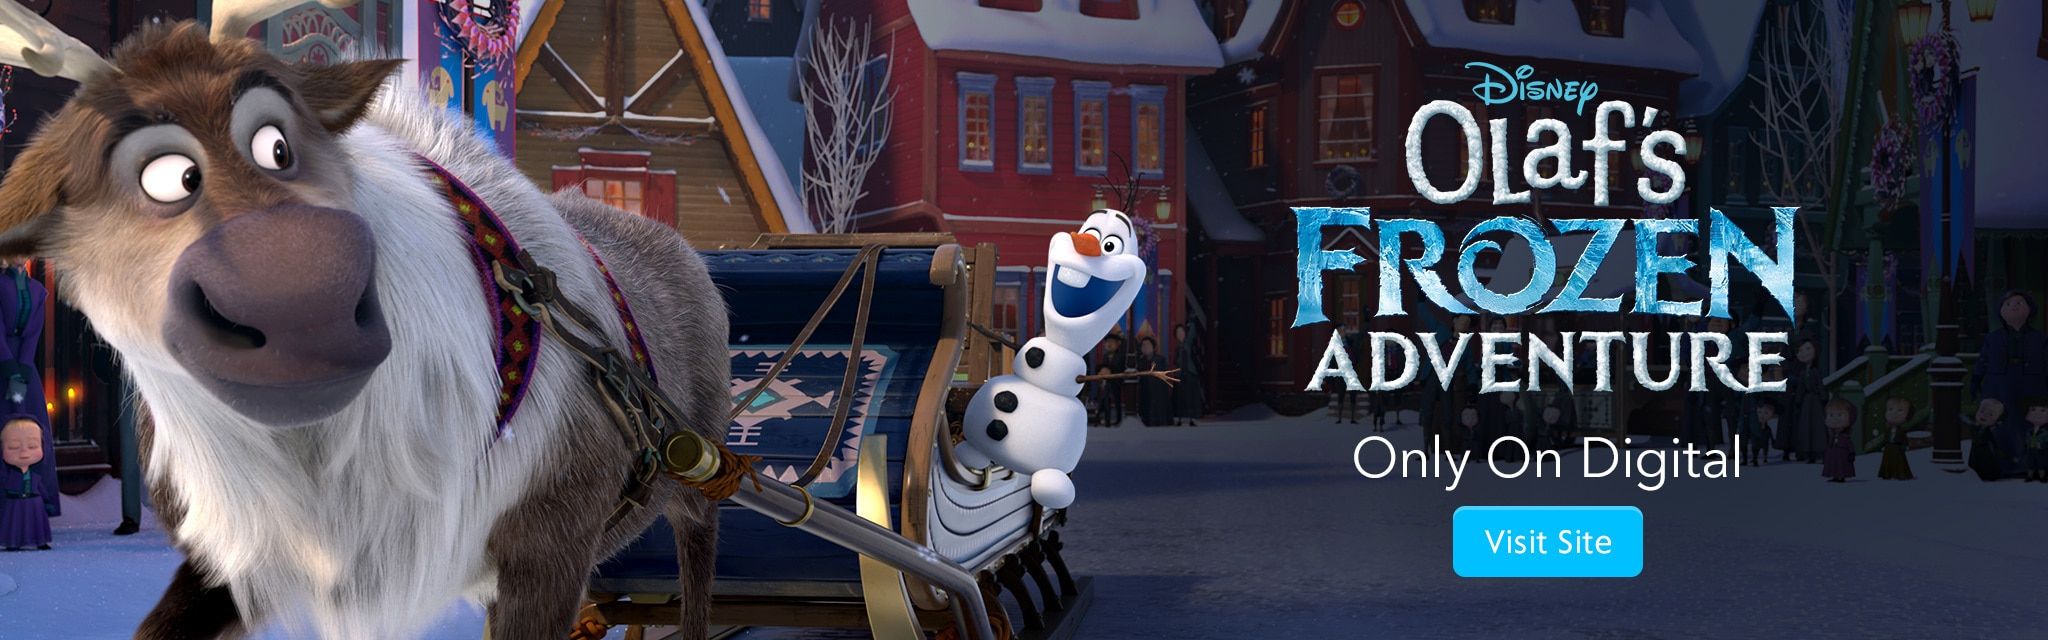 Olaf's Frozen Adventure - Only On Digital - Visit Site